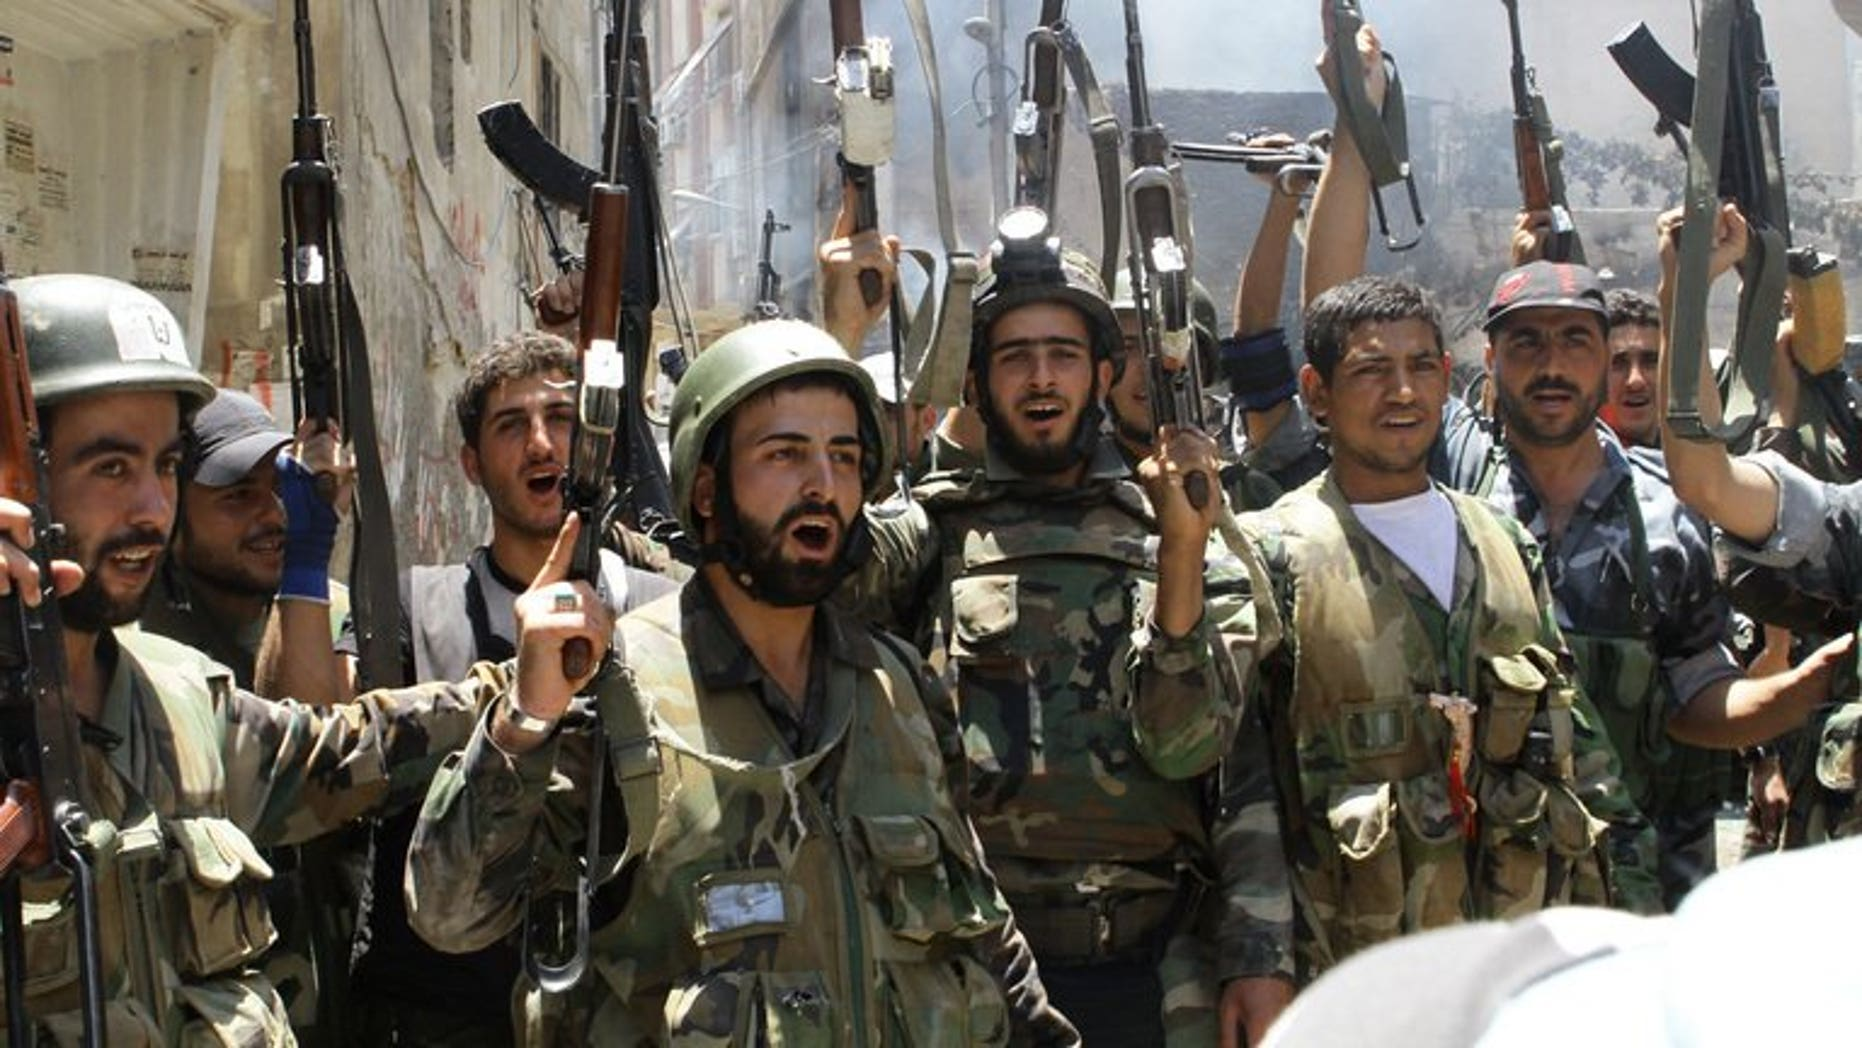 Syrian soldiers celebrate in the al-Midan area in Damascus on July 20, 2012. Troops loyal to Syrian President Bashar al-Assad pushed forward a bid to crush rebel bastions near the capital Damascus, a monitoring group and activists said.